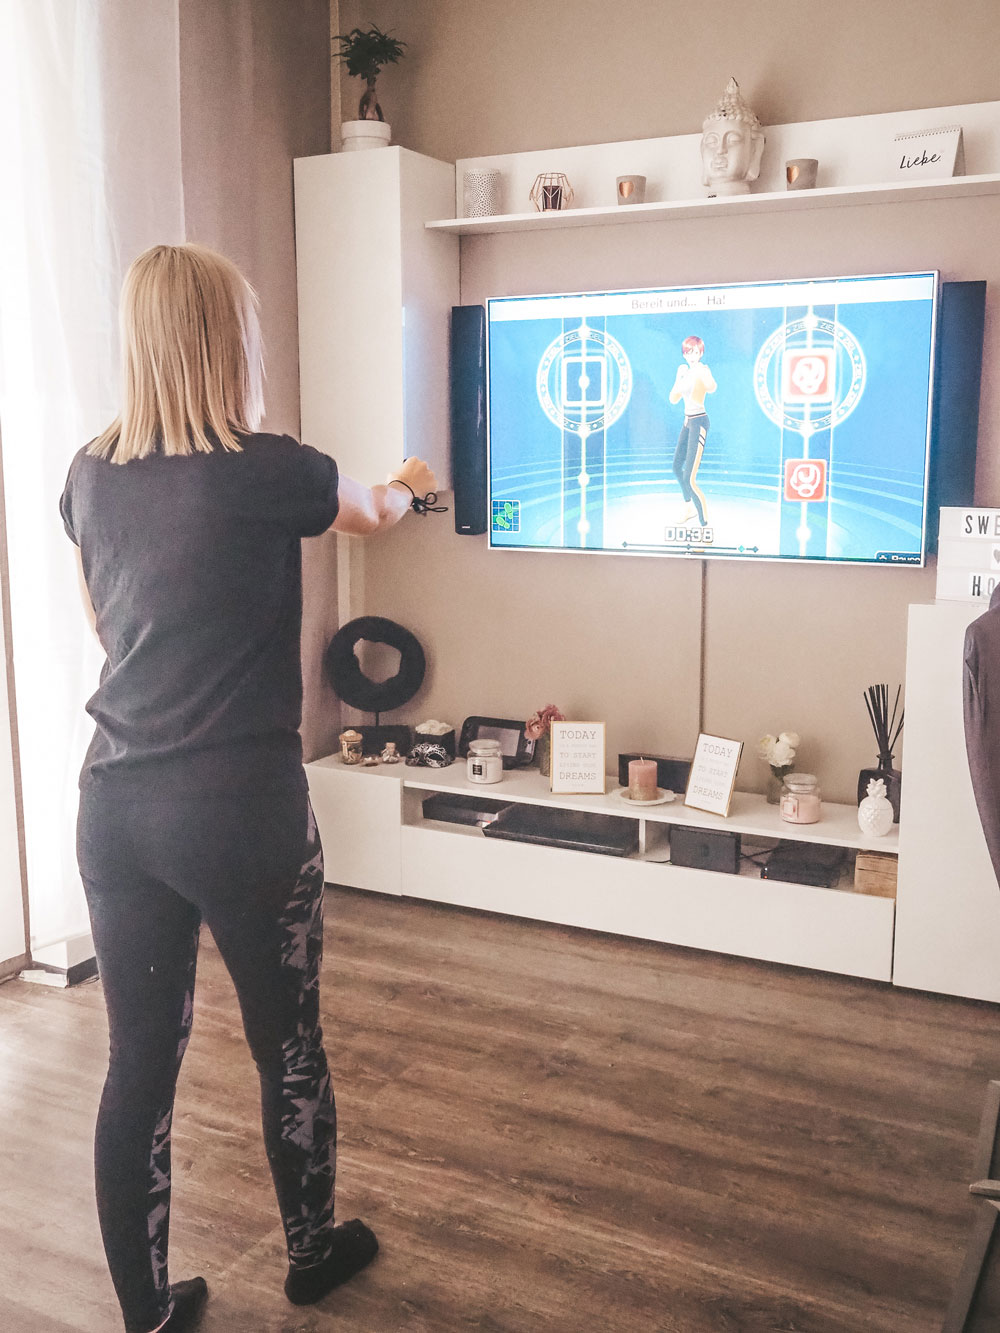 Fitness Boxing: Box dich fit mit der Nintendo Switch